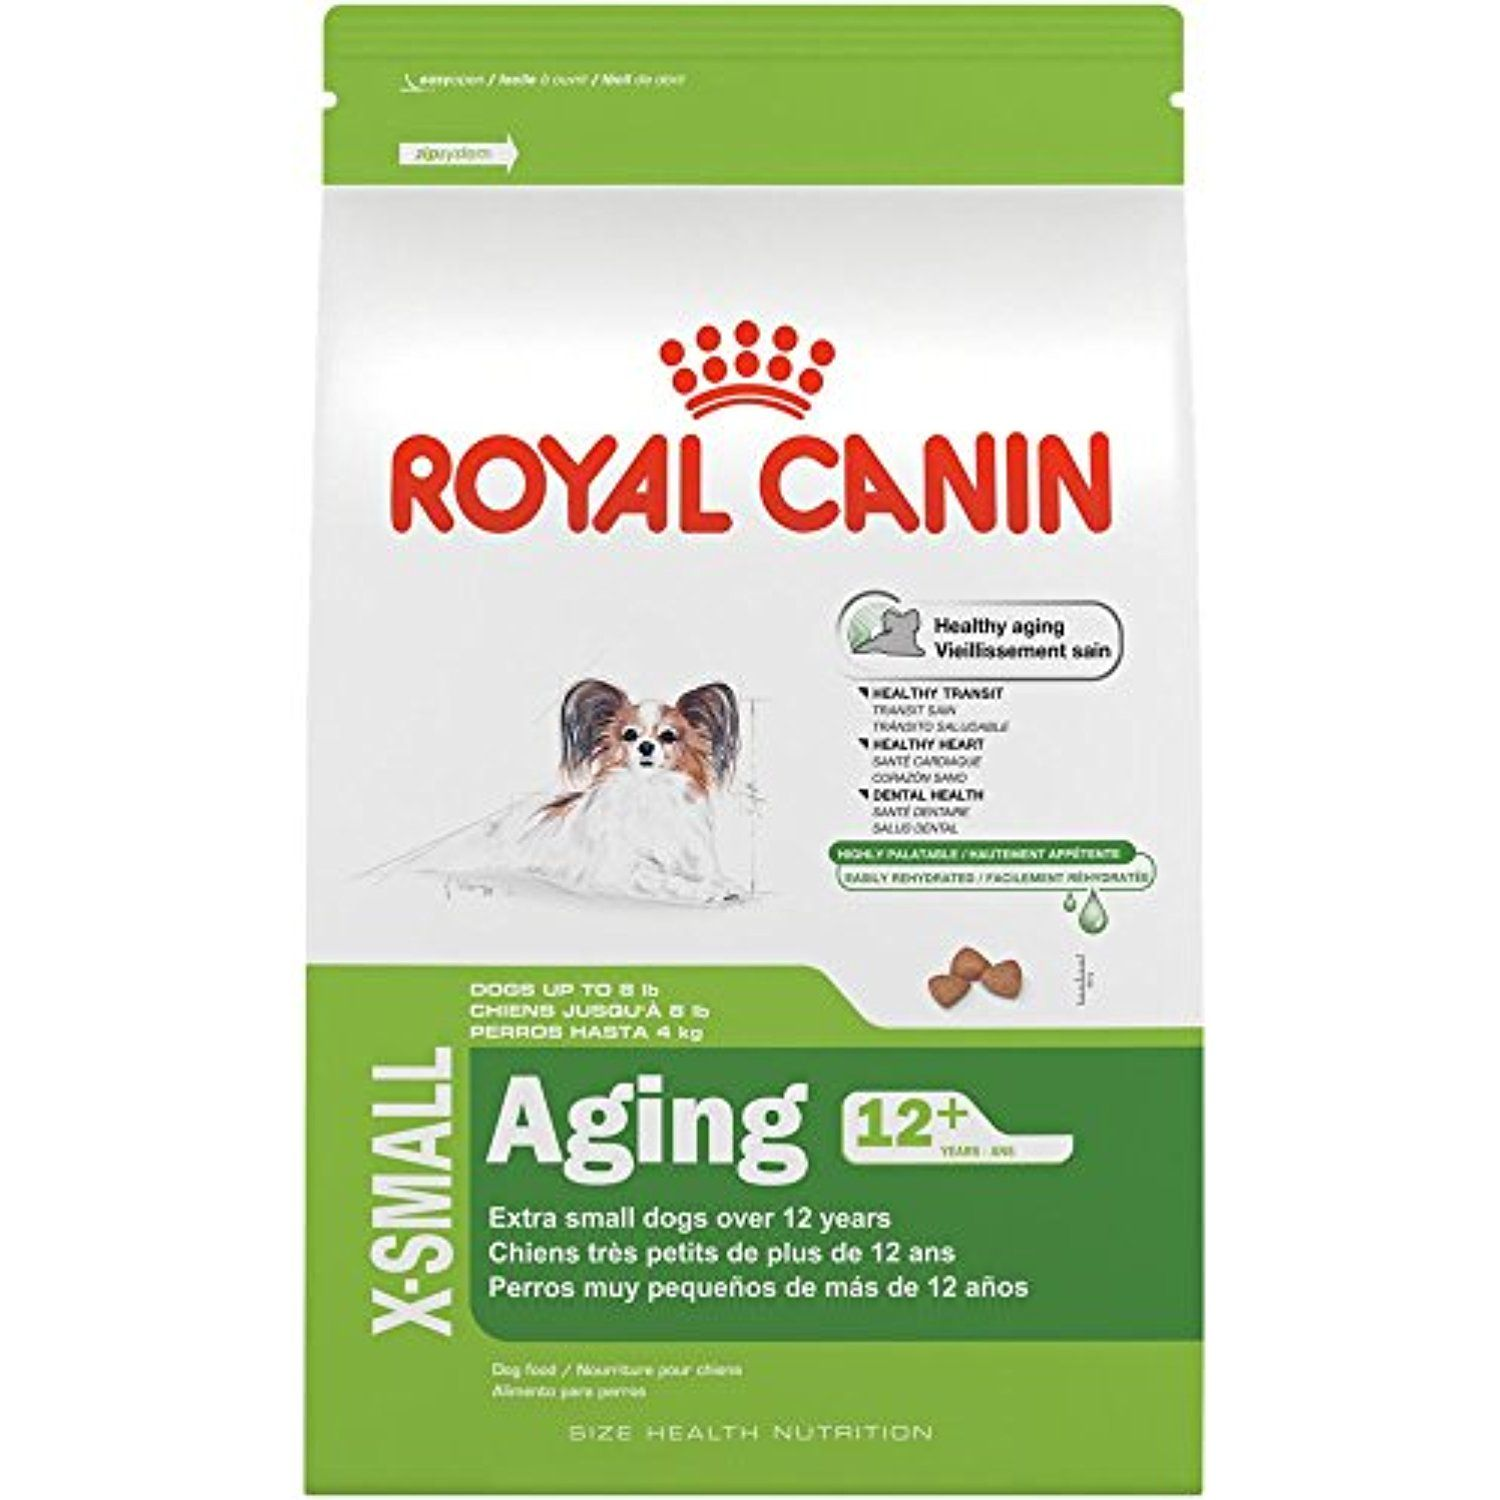 Royal Canin Size Health Nutrition X Small Aging 12 Dry Dog Food 2 5 Pound You Could Find More Details By Visiting Dry Dog Food Puppy Formula Royal Canin